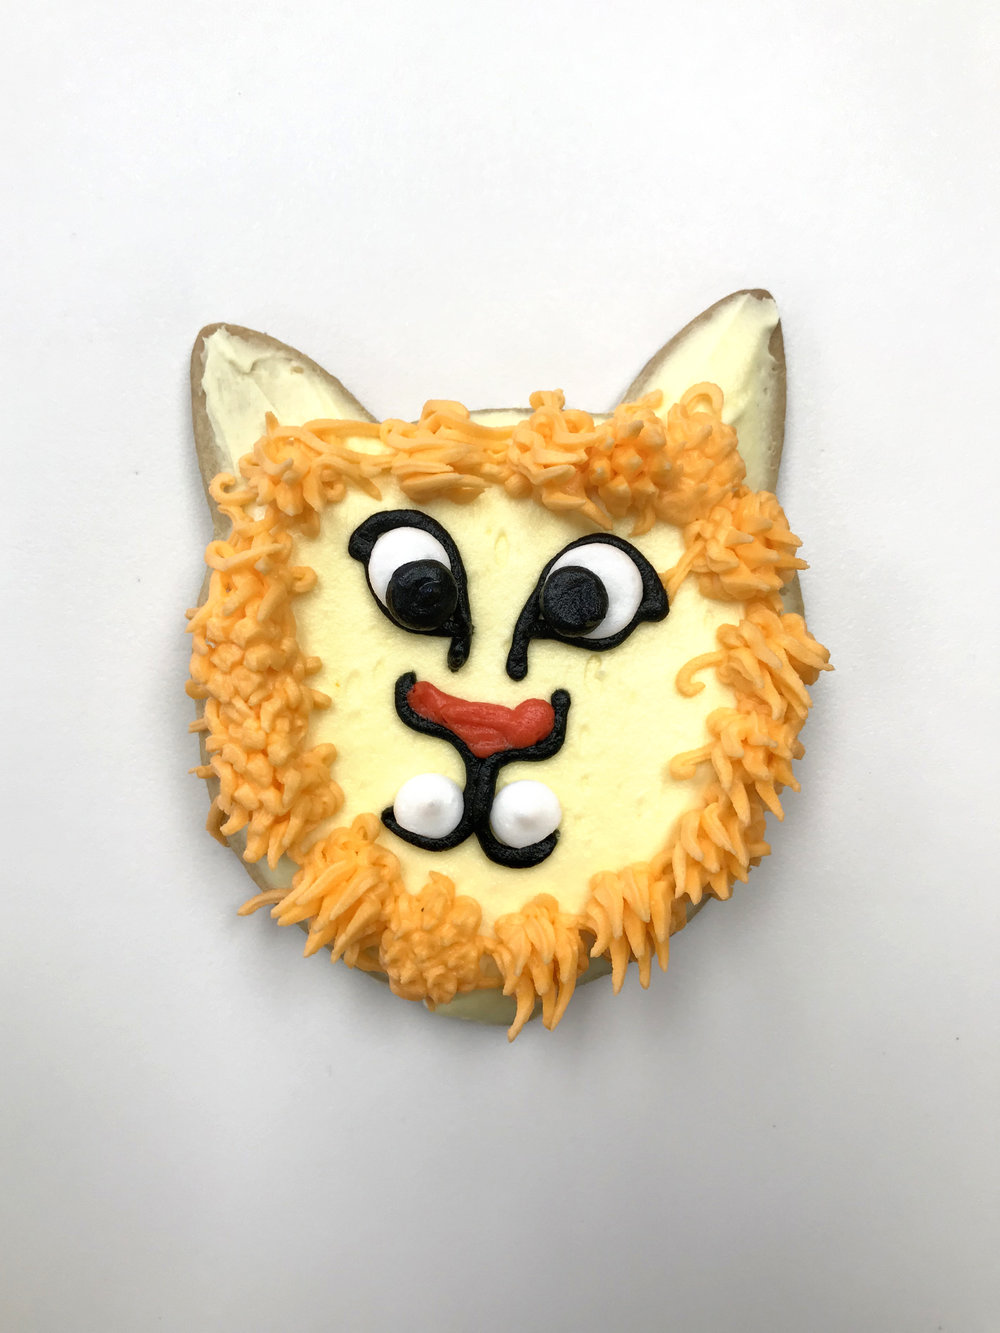 Lion Cutout Cookie